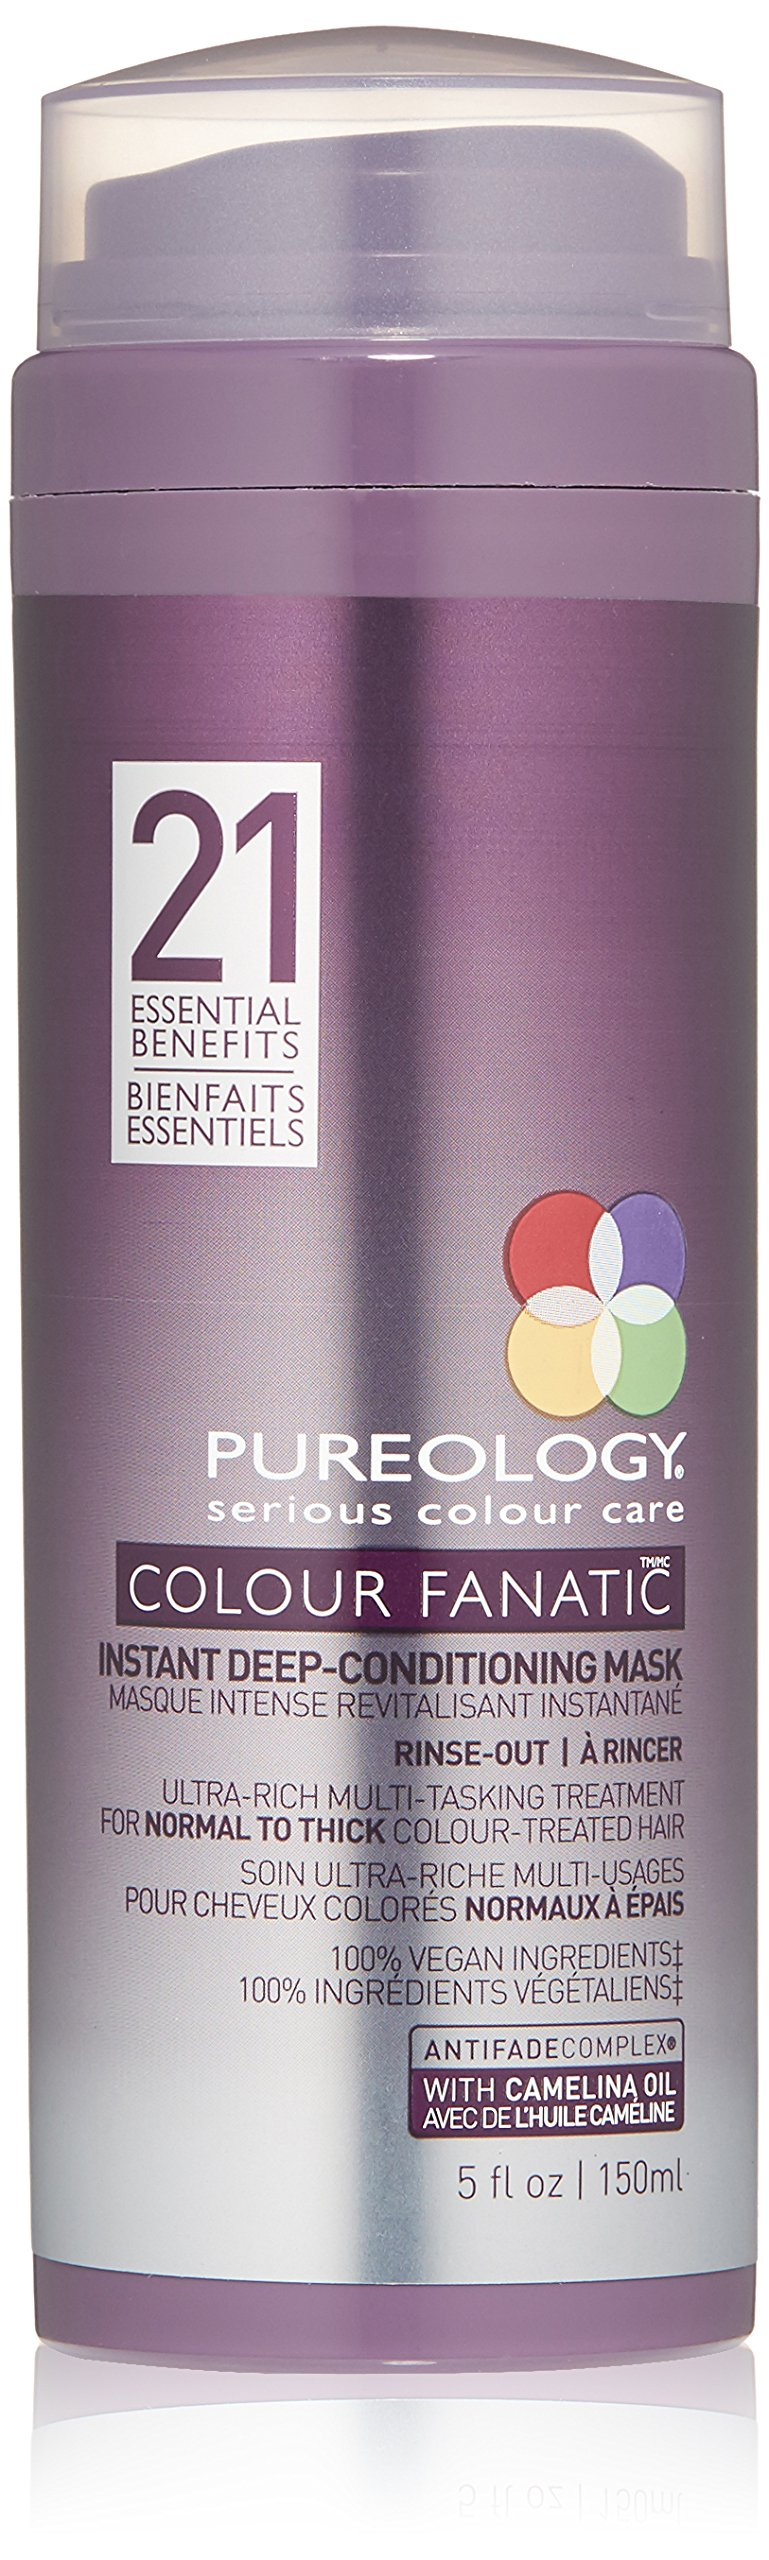 Pureology Colour Fanatic Instant Deep-Conditioning Mask, 5 Fl Oz